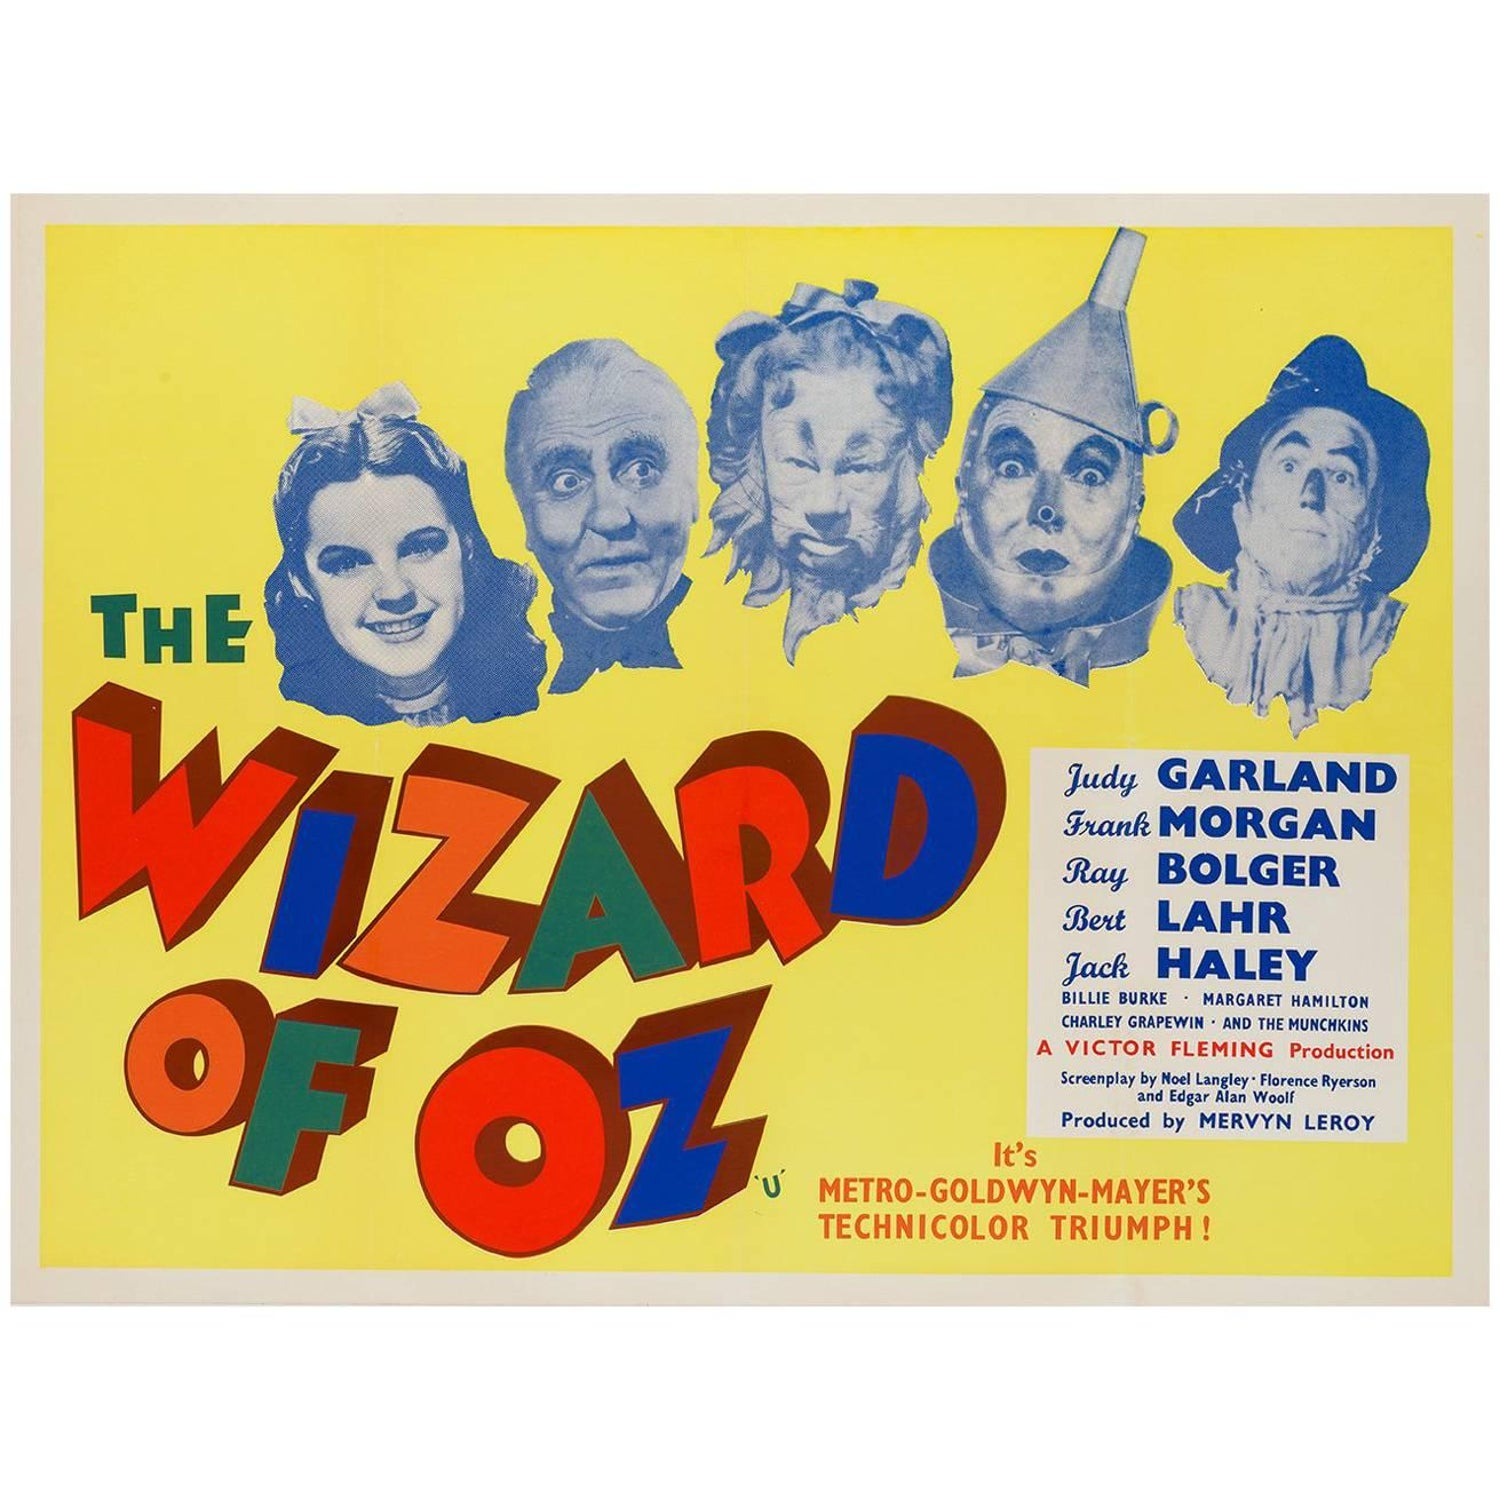 Wizard of Oz UK Film Poster, 1959 For Sale at 1stdibs